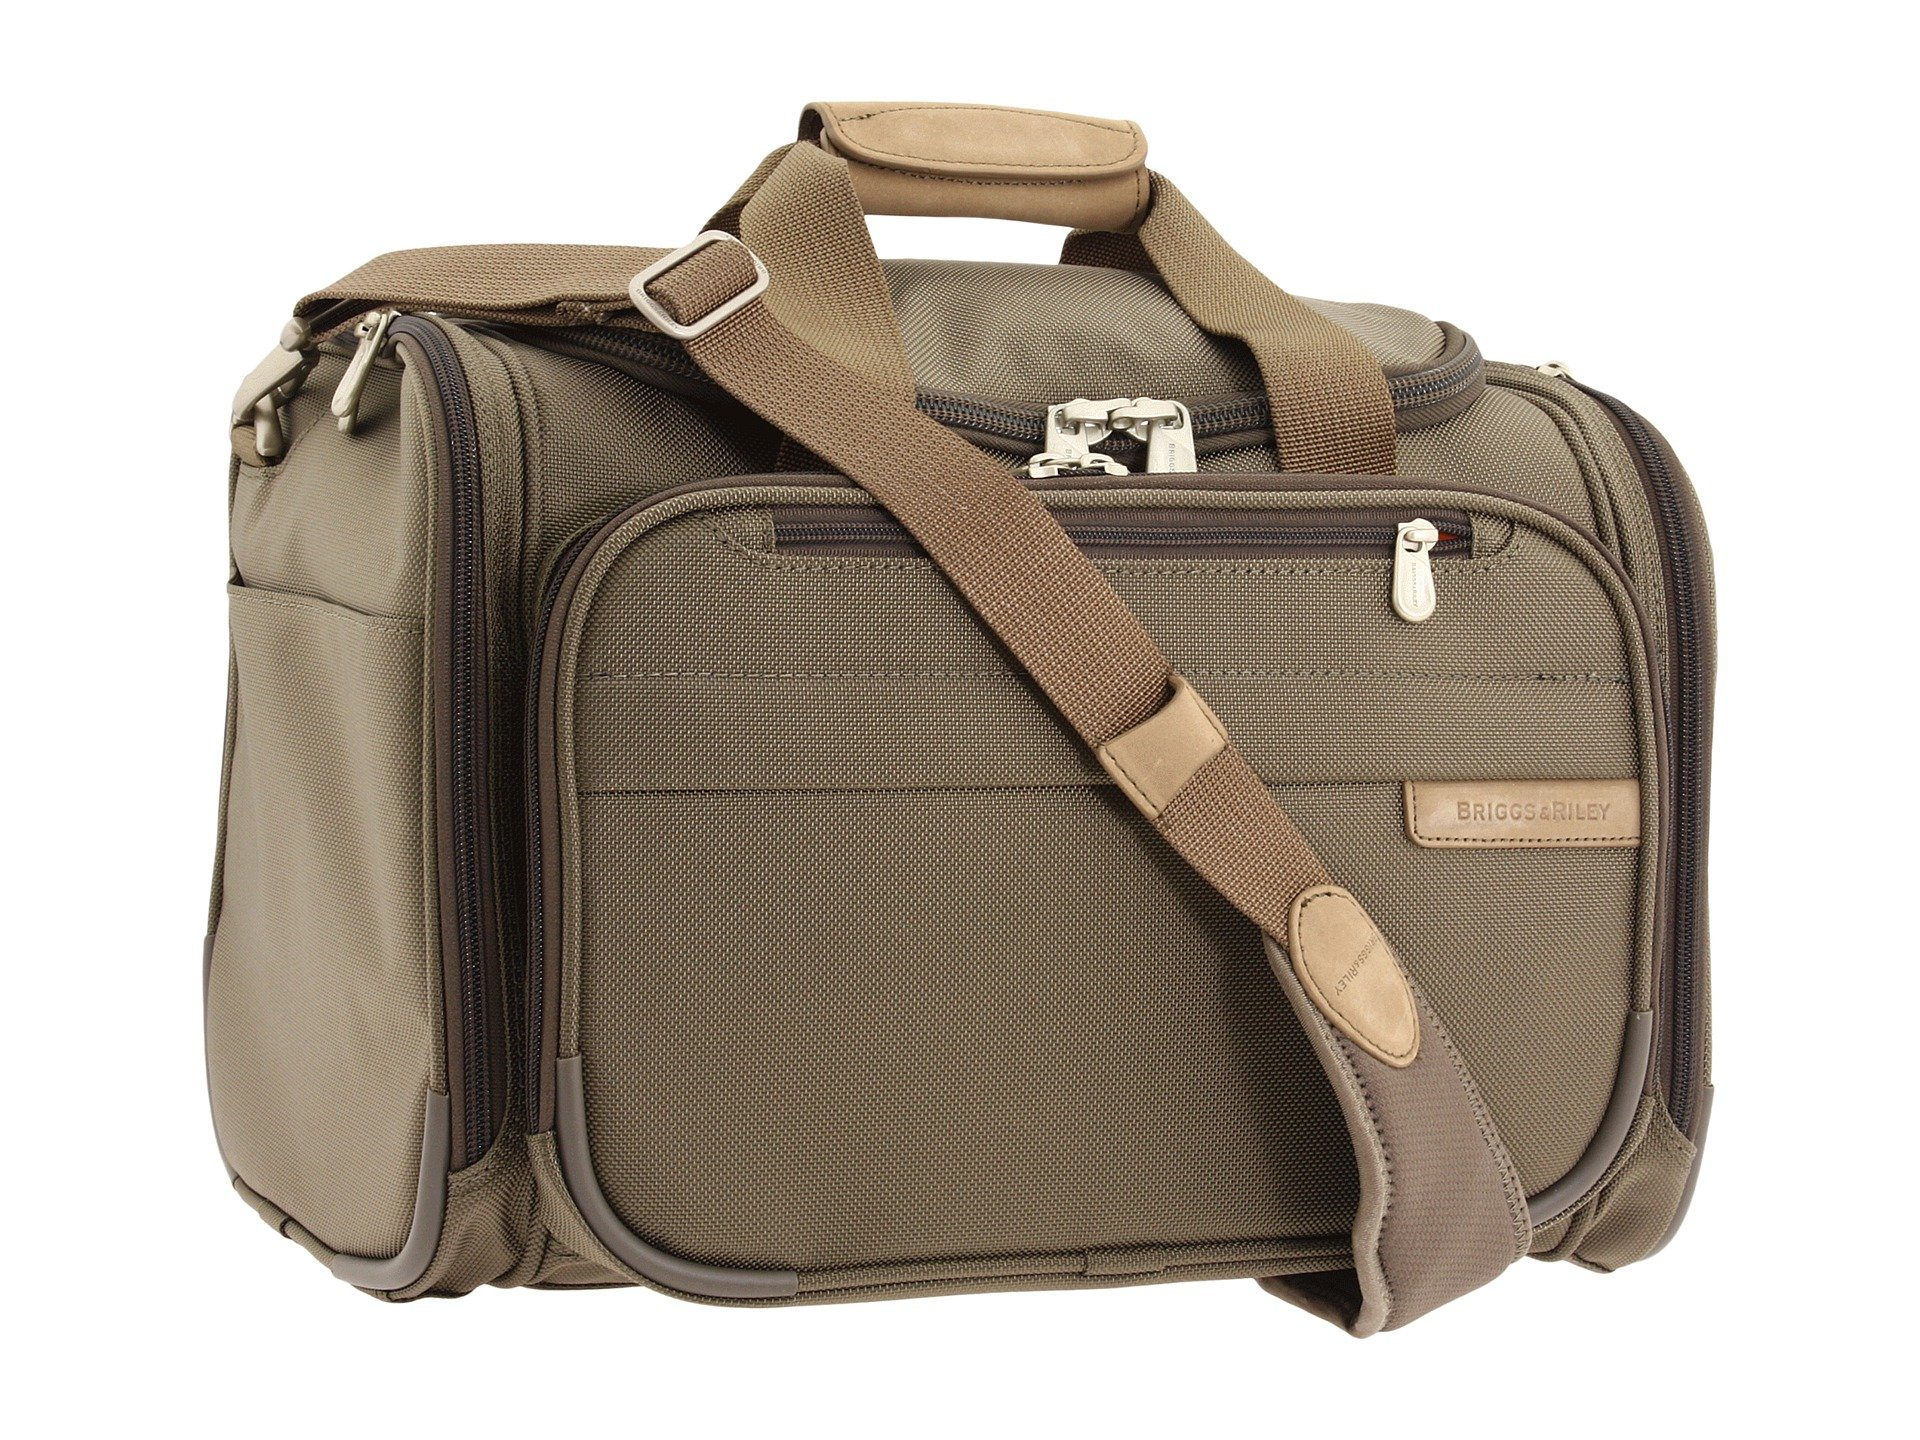 Cabin Riley Duffle Olive Baseline Briggs amp; pHwZxqwf